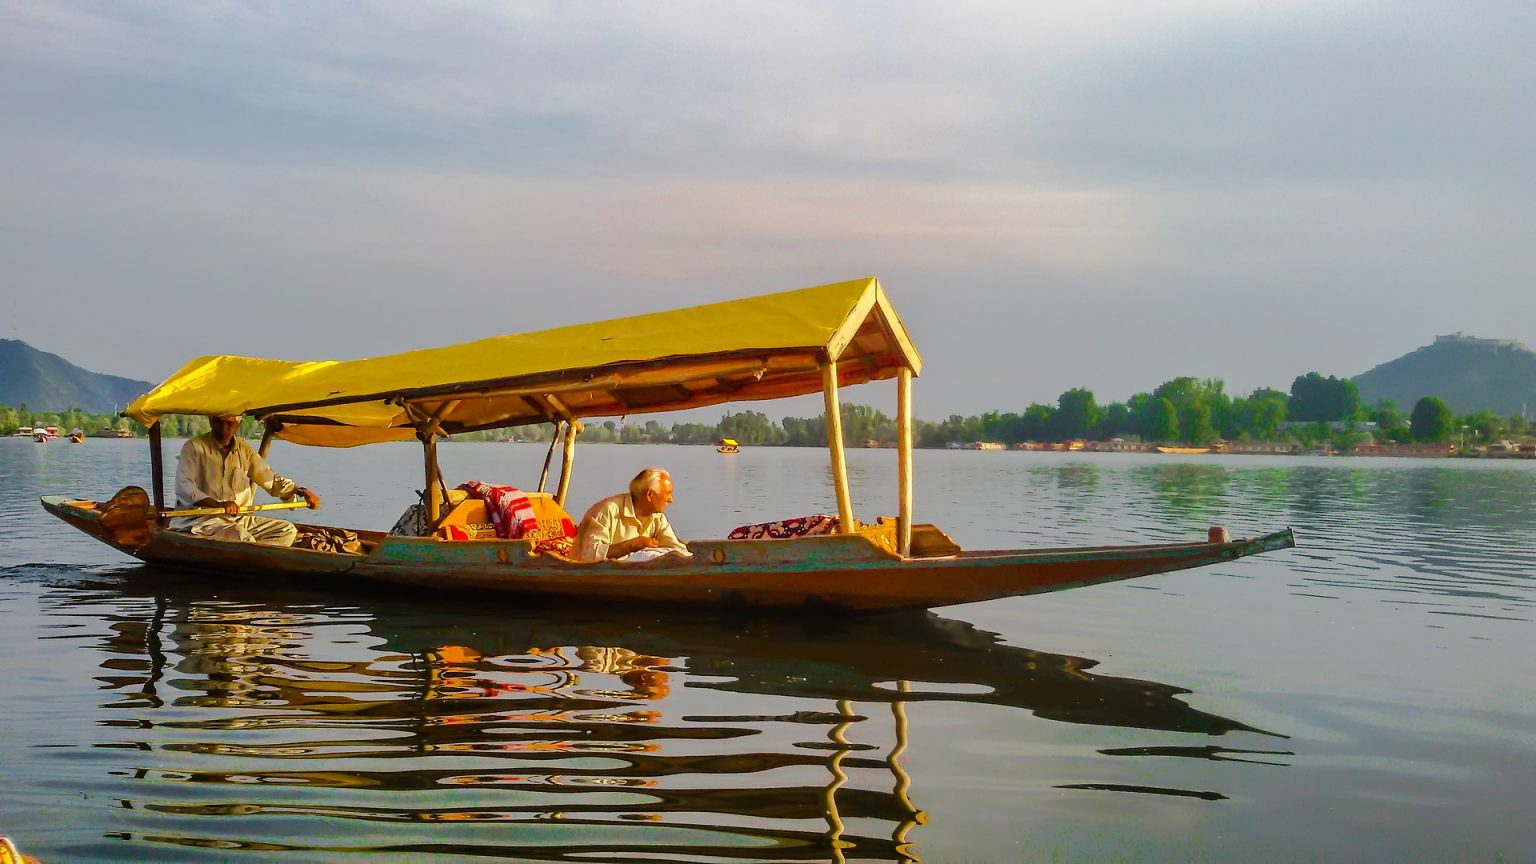 Dal lake booking open in summer